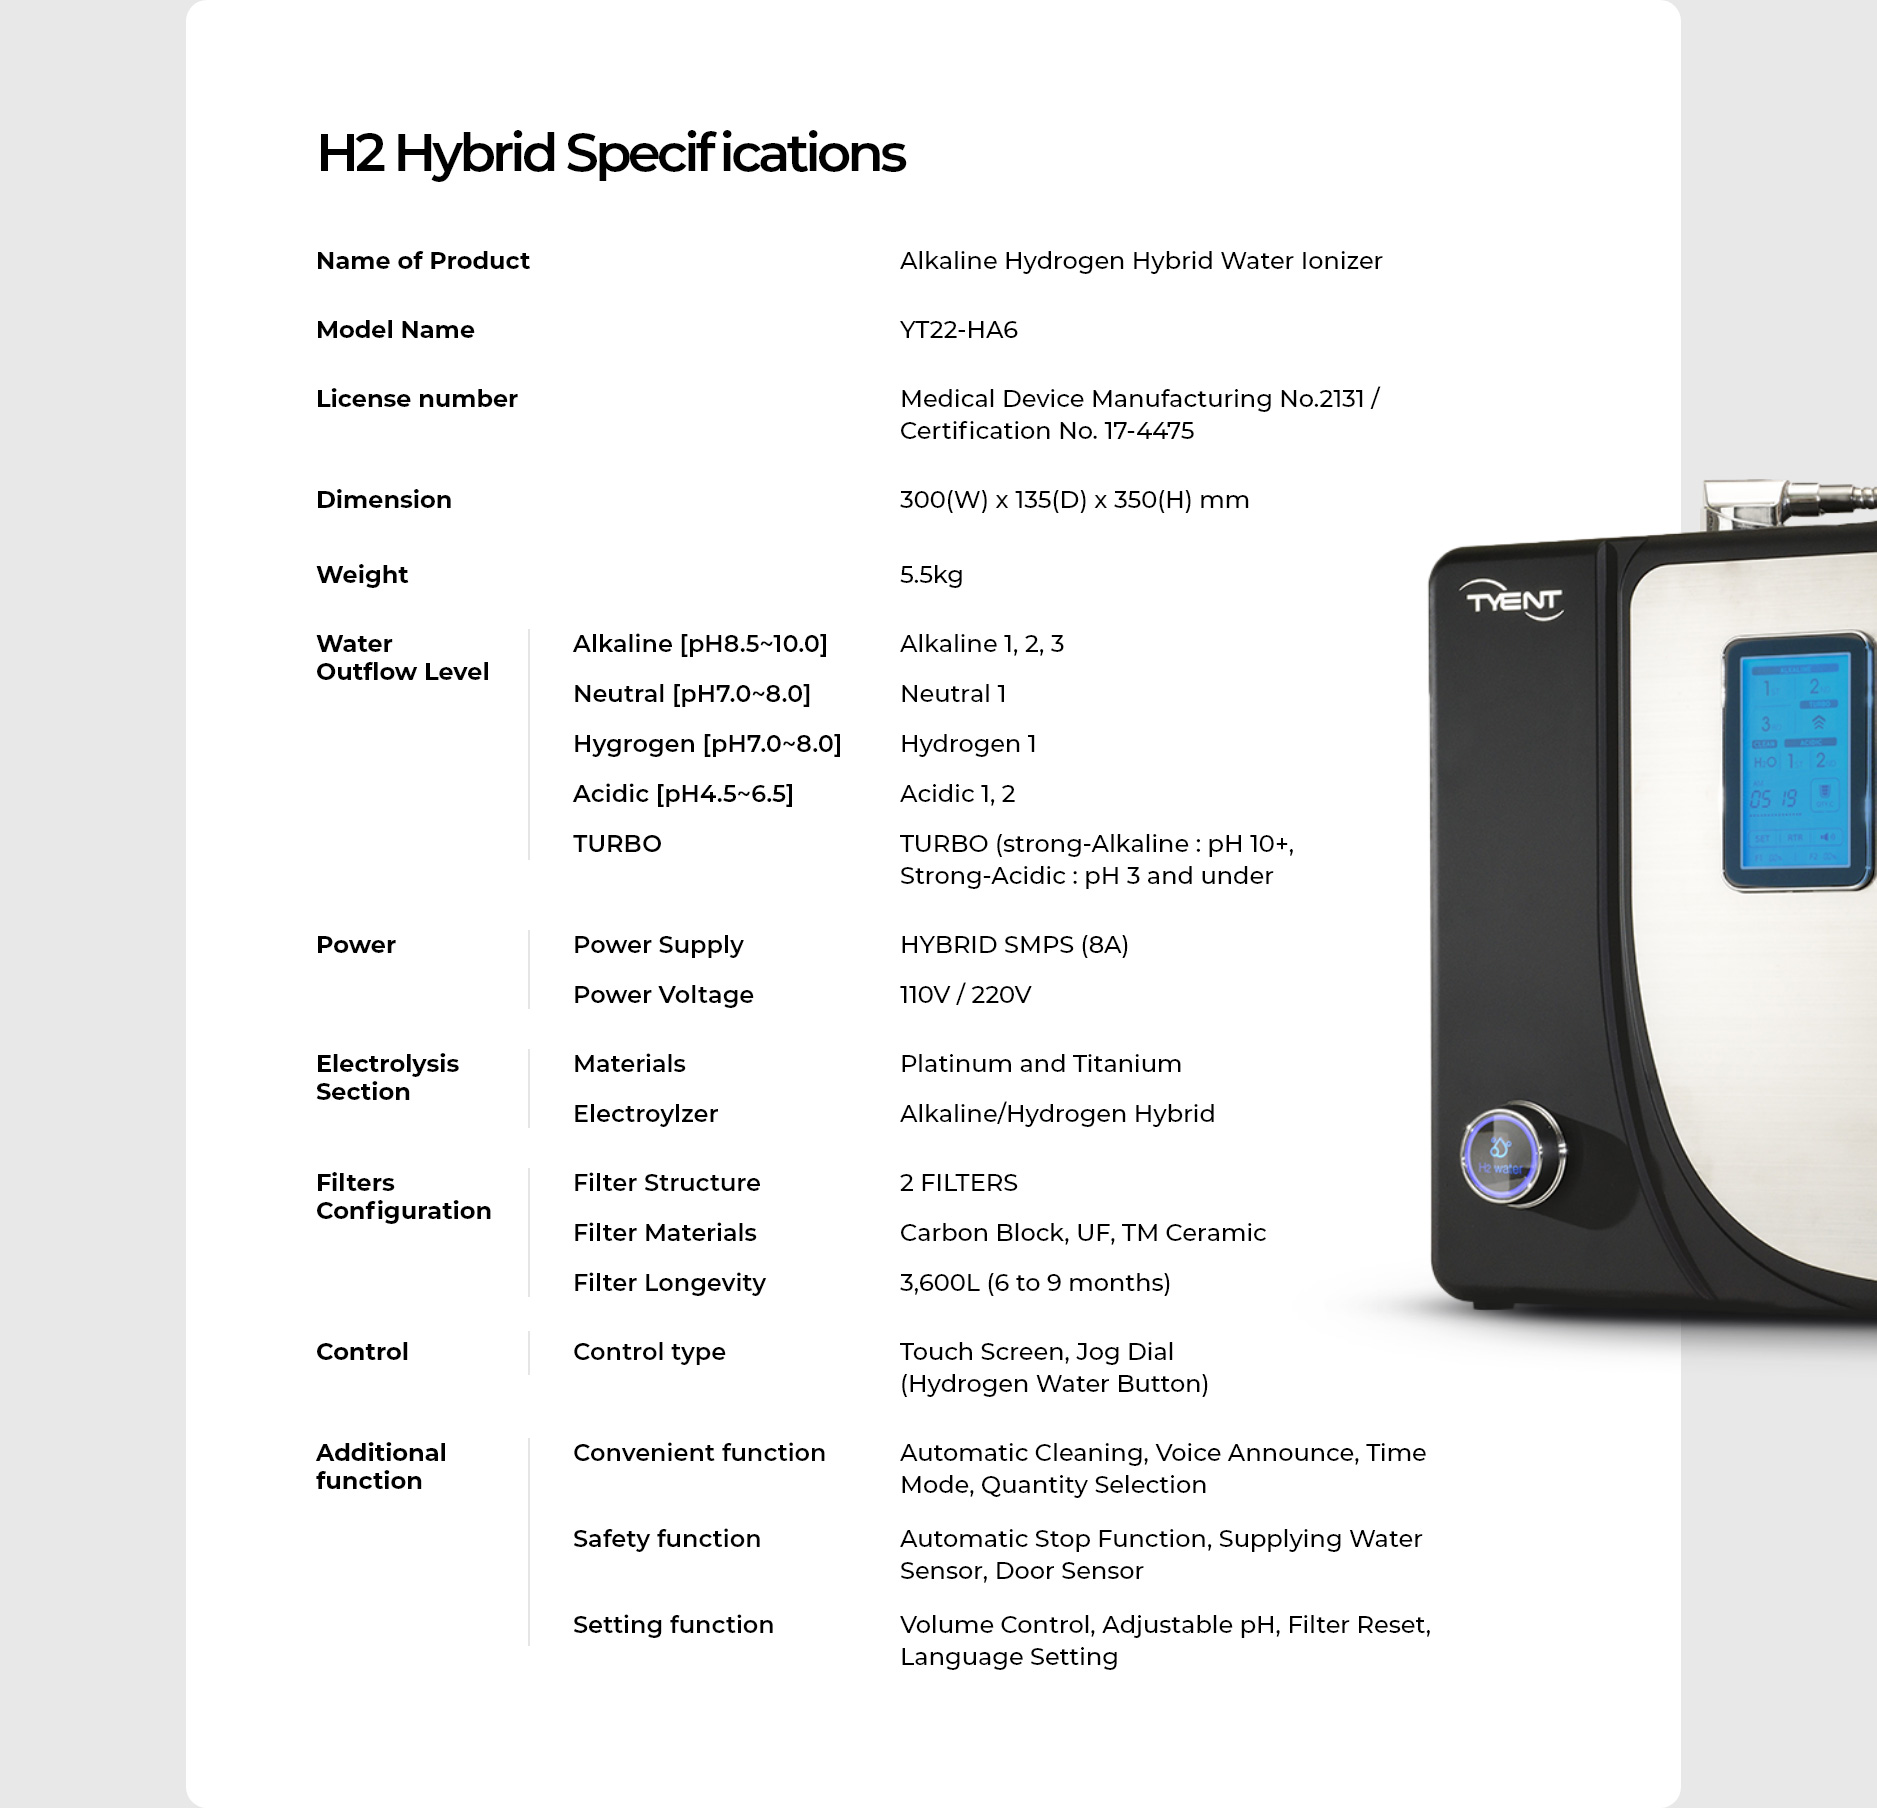 H2 Hybrid Specifications